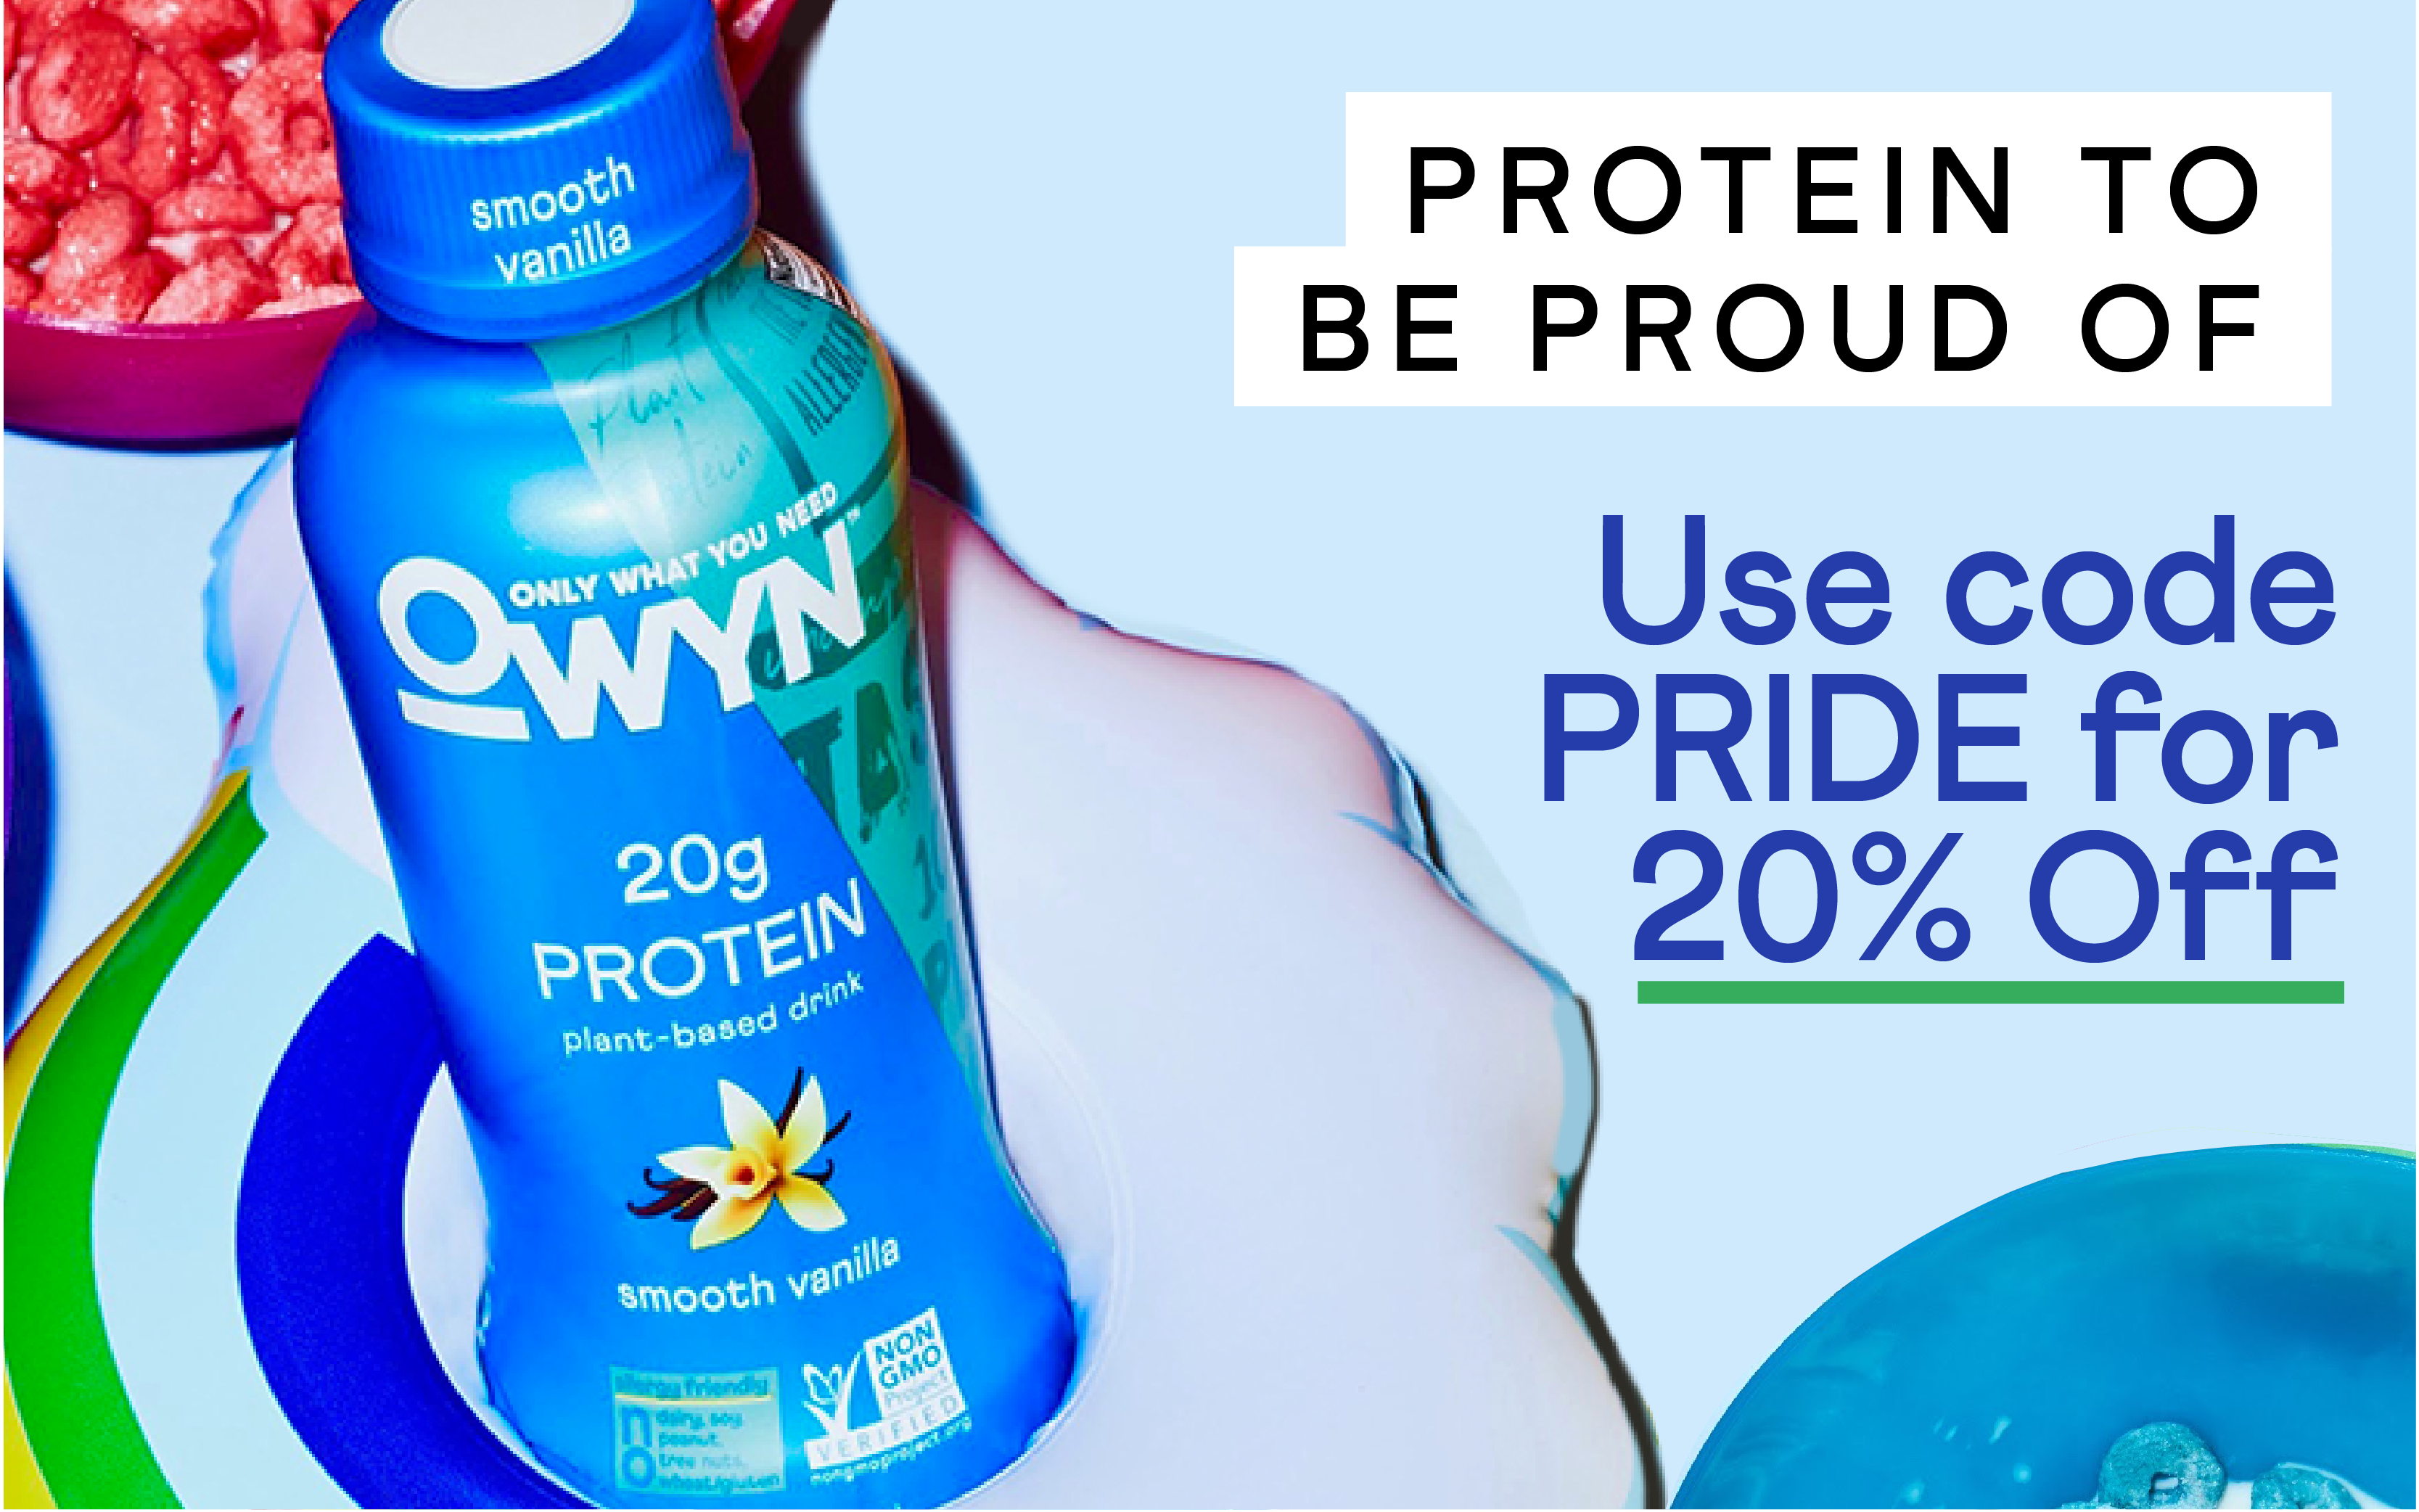 Protein to be Proud of - 20% Off